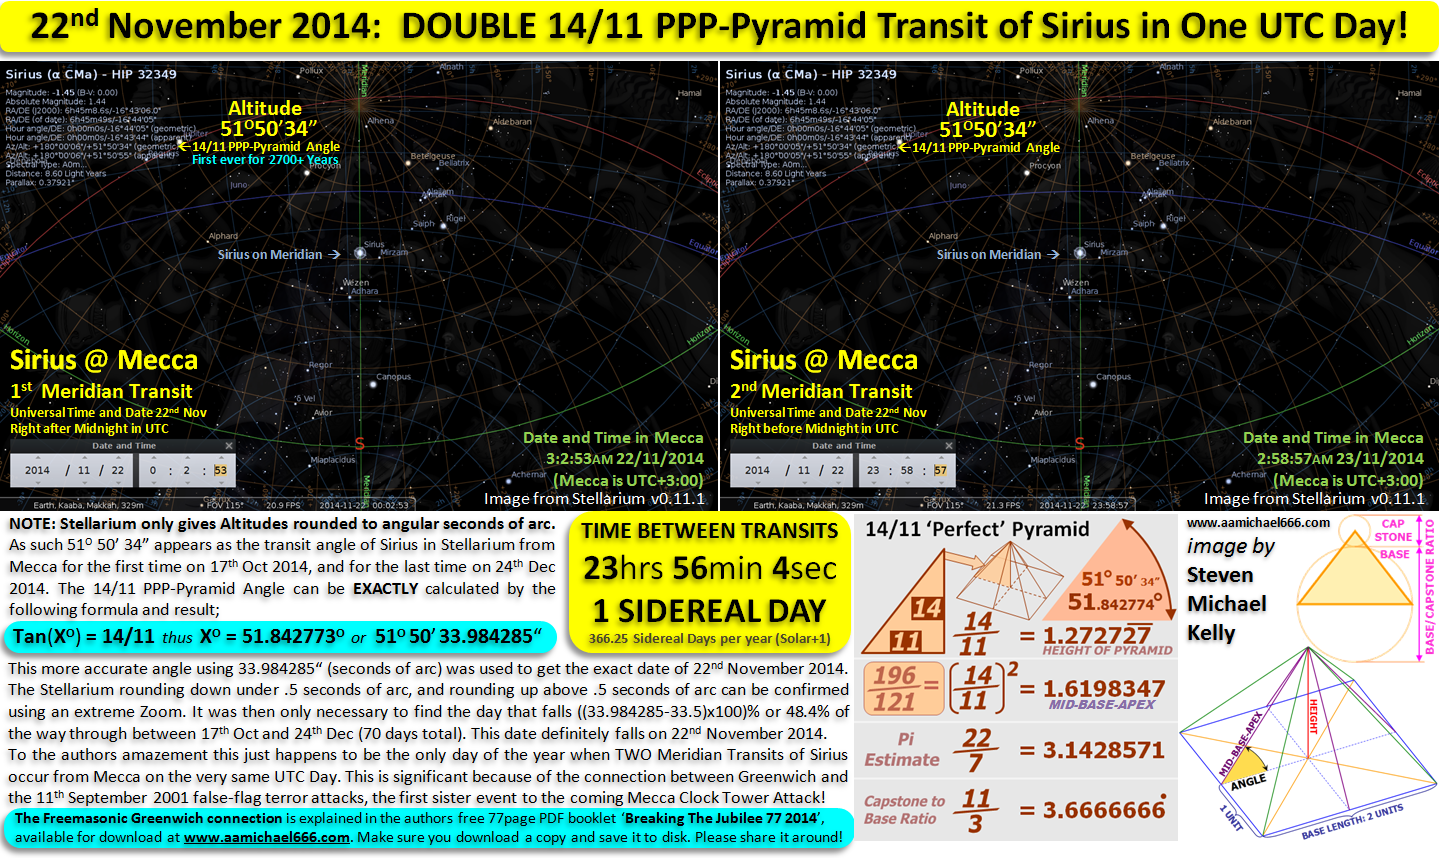 https://aamichael666.files.wordpress.com/2014/11/22-11-2014-double-sirius-meridian-transits-at-mecca-and-14-11-ppp-pyramid-angle-clock-tower-terror-attack-22-11-2014.png